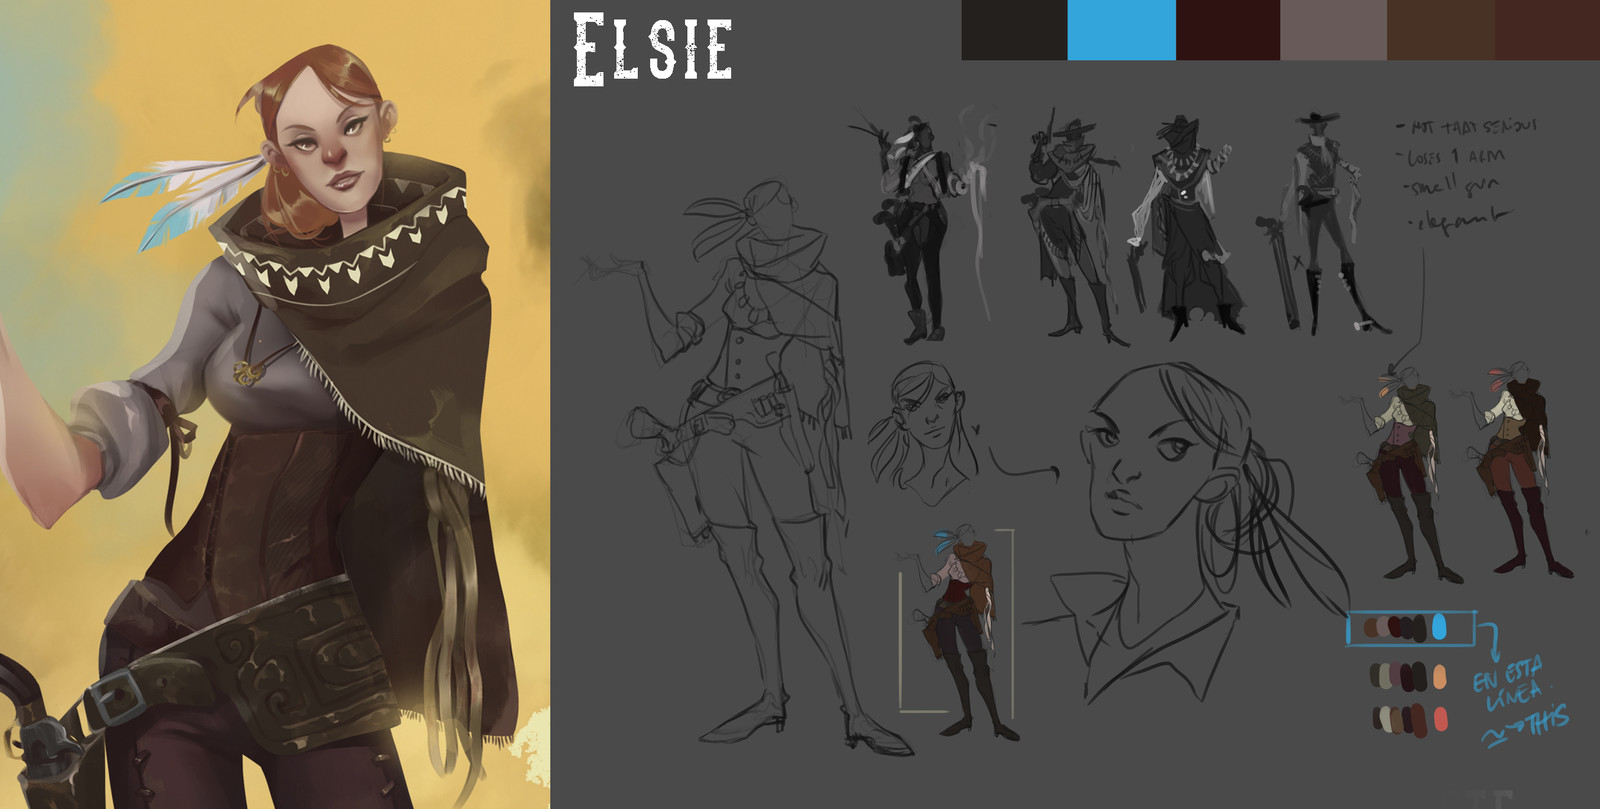 Part of the process followed to design Elsie.